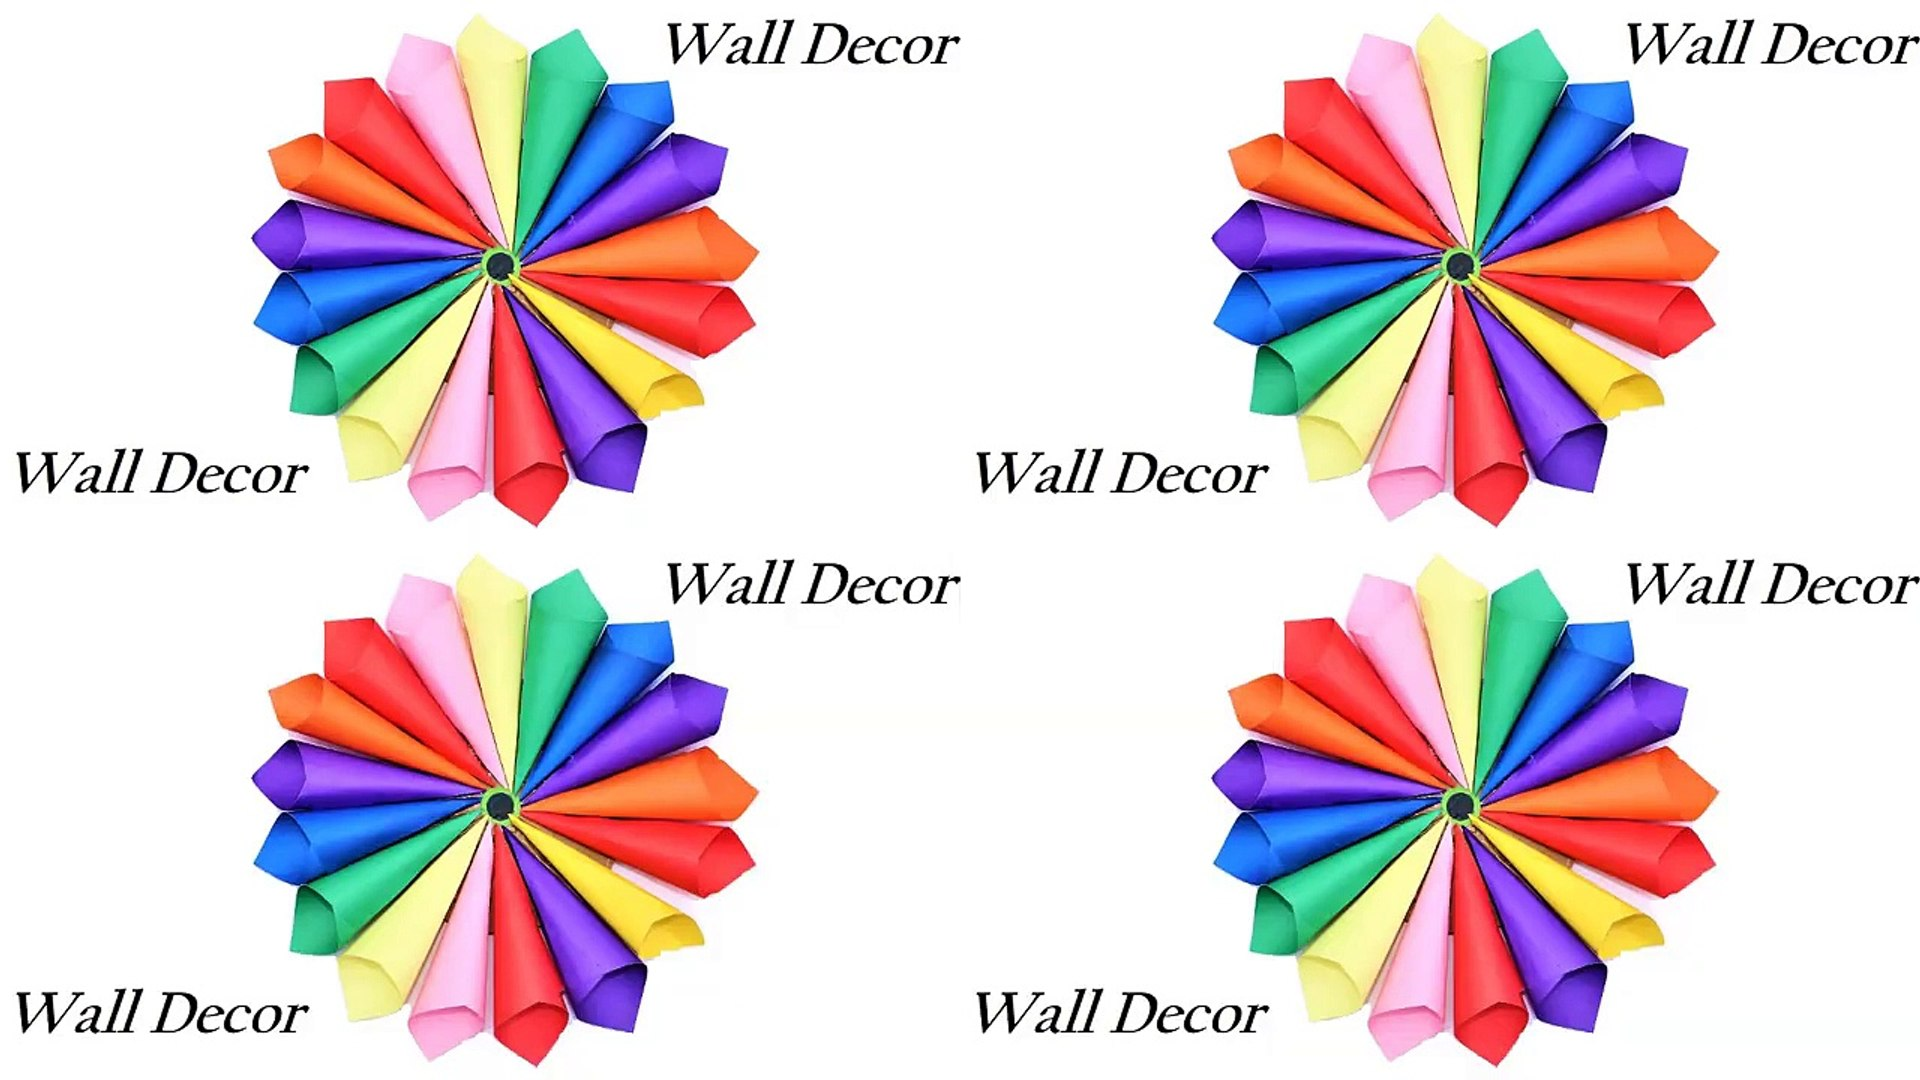 Paper Craft Ideas For Wall Decoration Step By Step Diy Crafts With Paper For Room Decoration Video Dailymotion